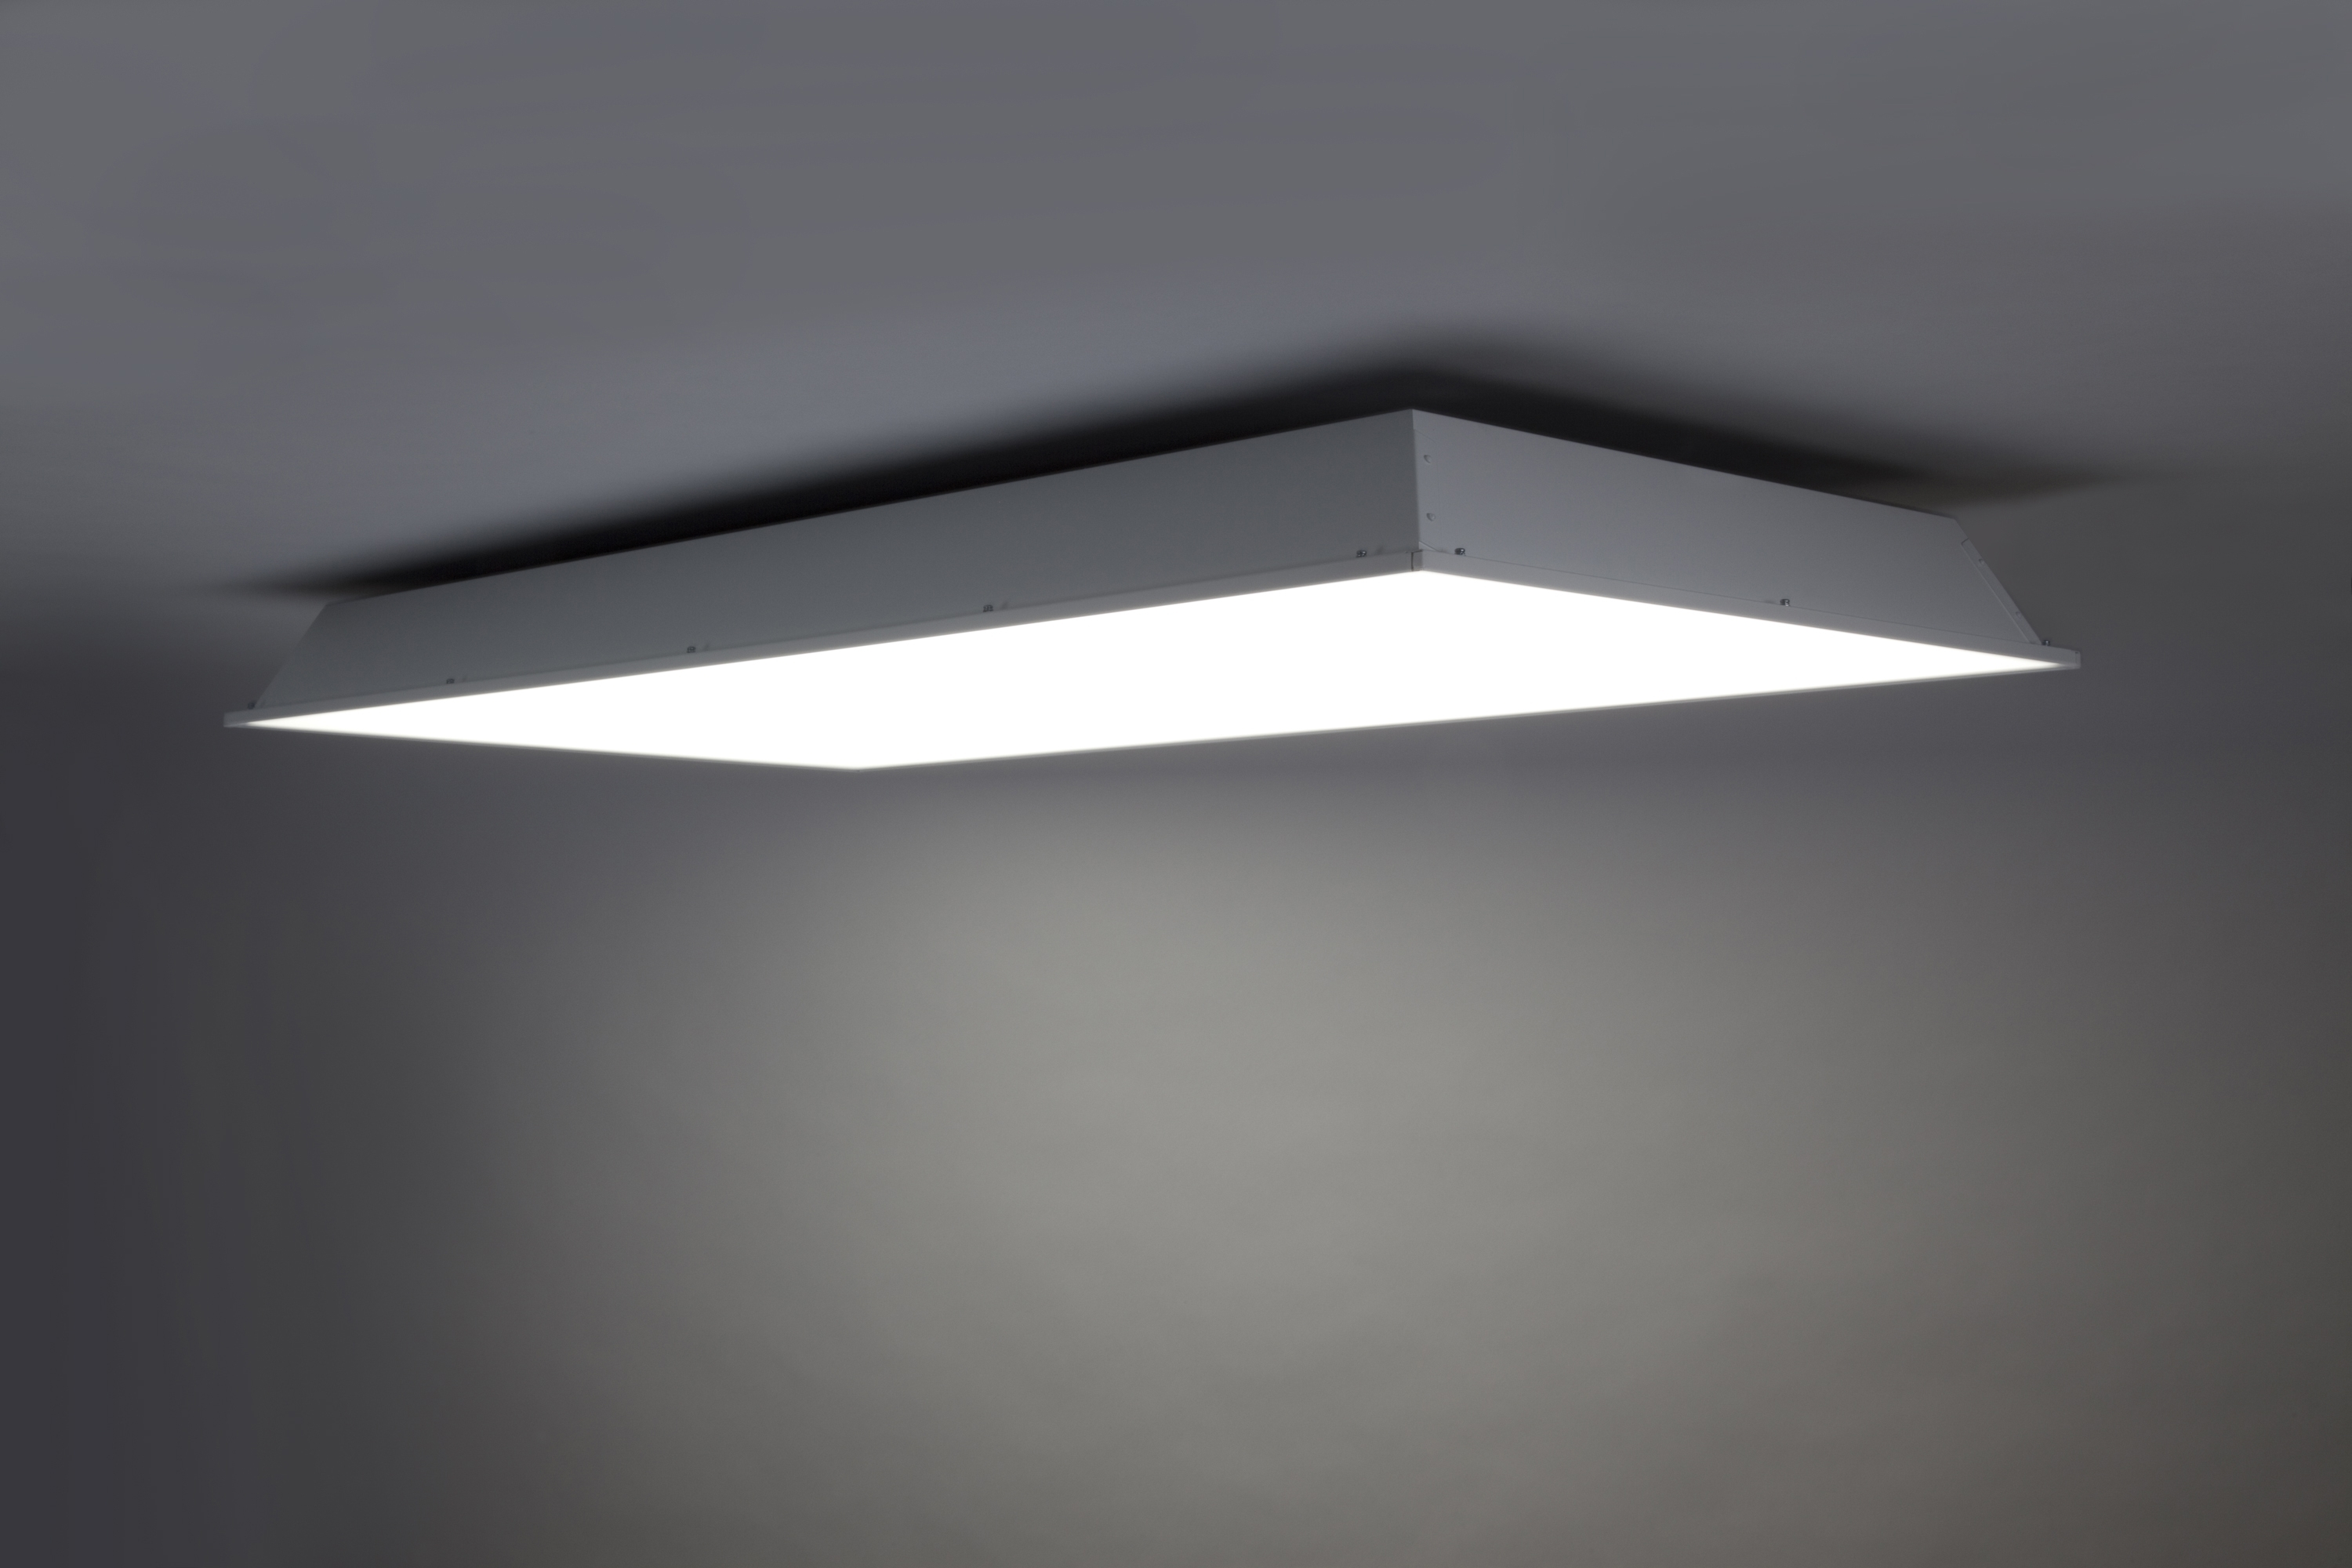 Popular Commercial Outdoor Ceiling Lighting Fixtures For Light : Led Ceiling Light Fixture Square Cool White Bathroom (View 14 of 20)